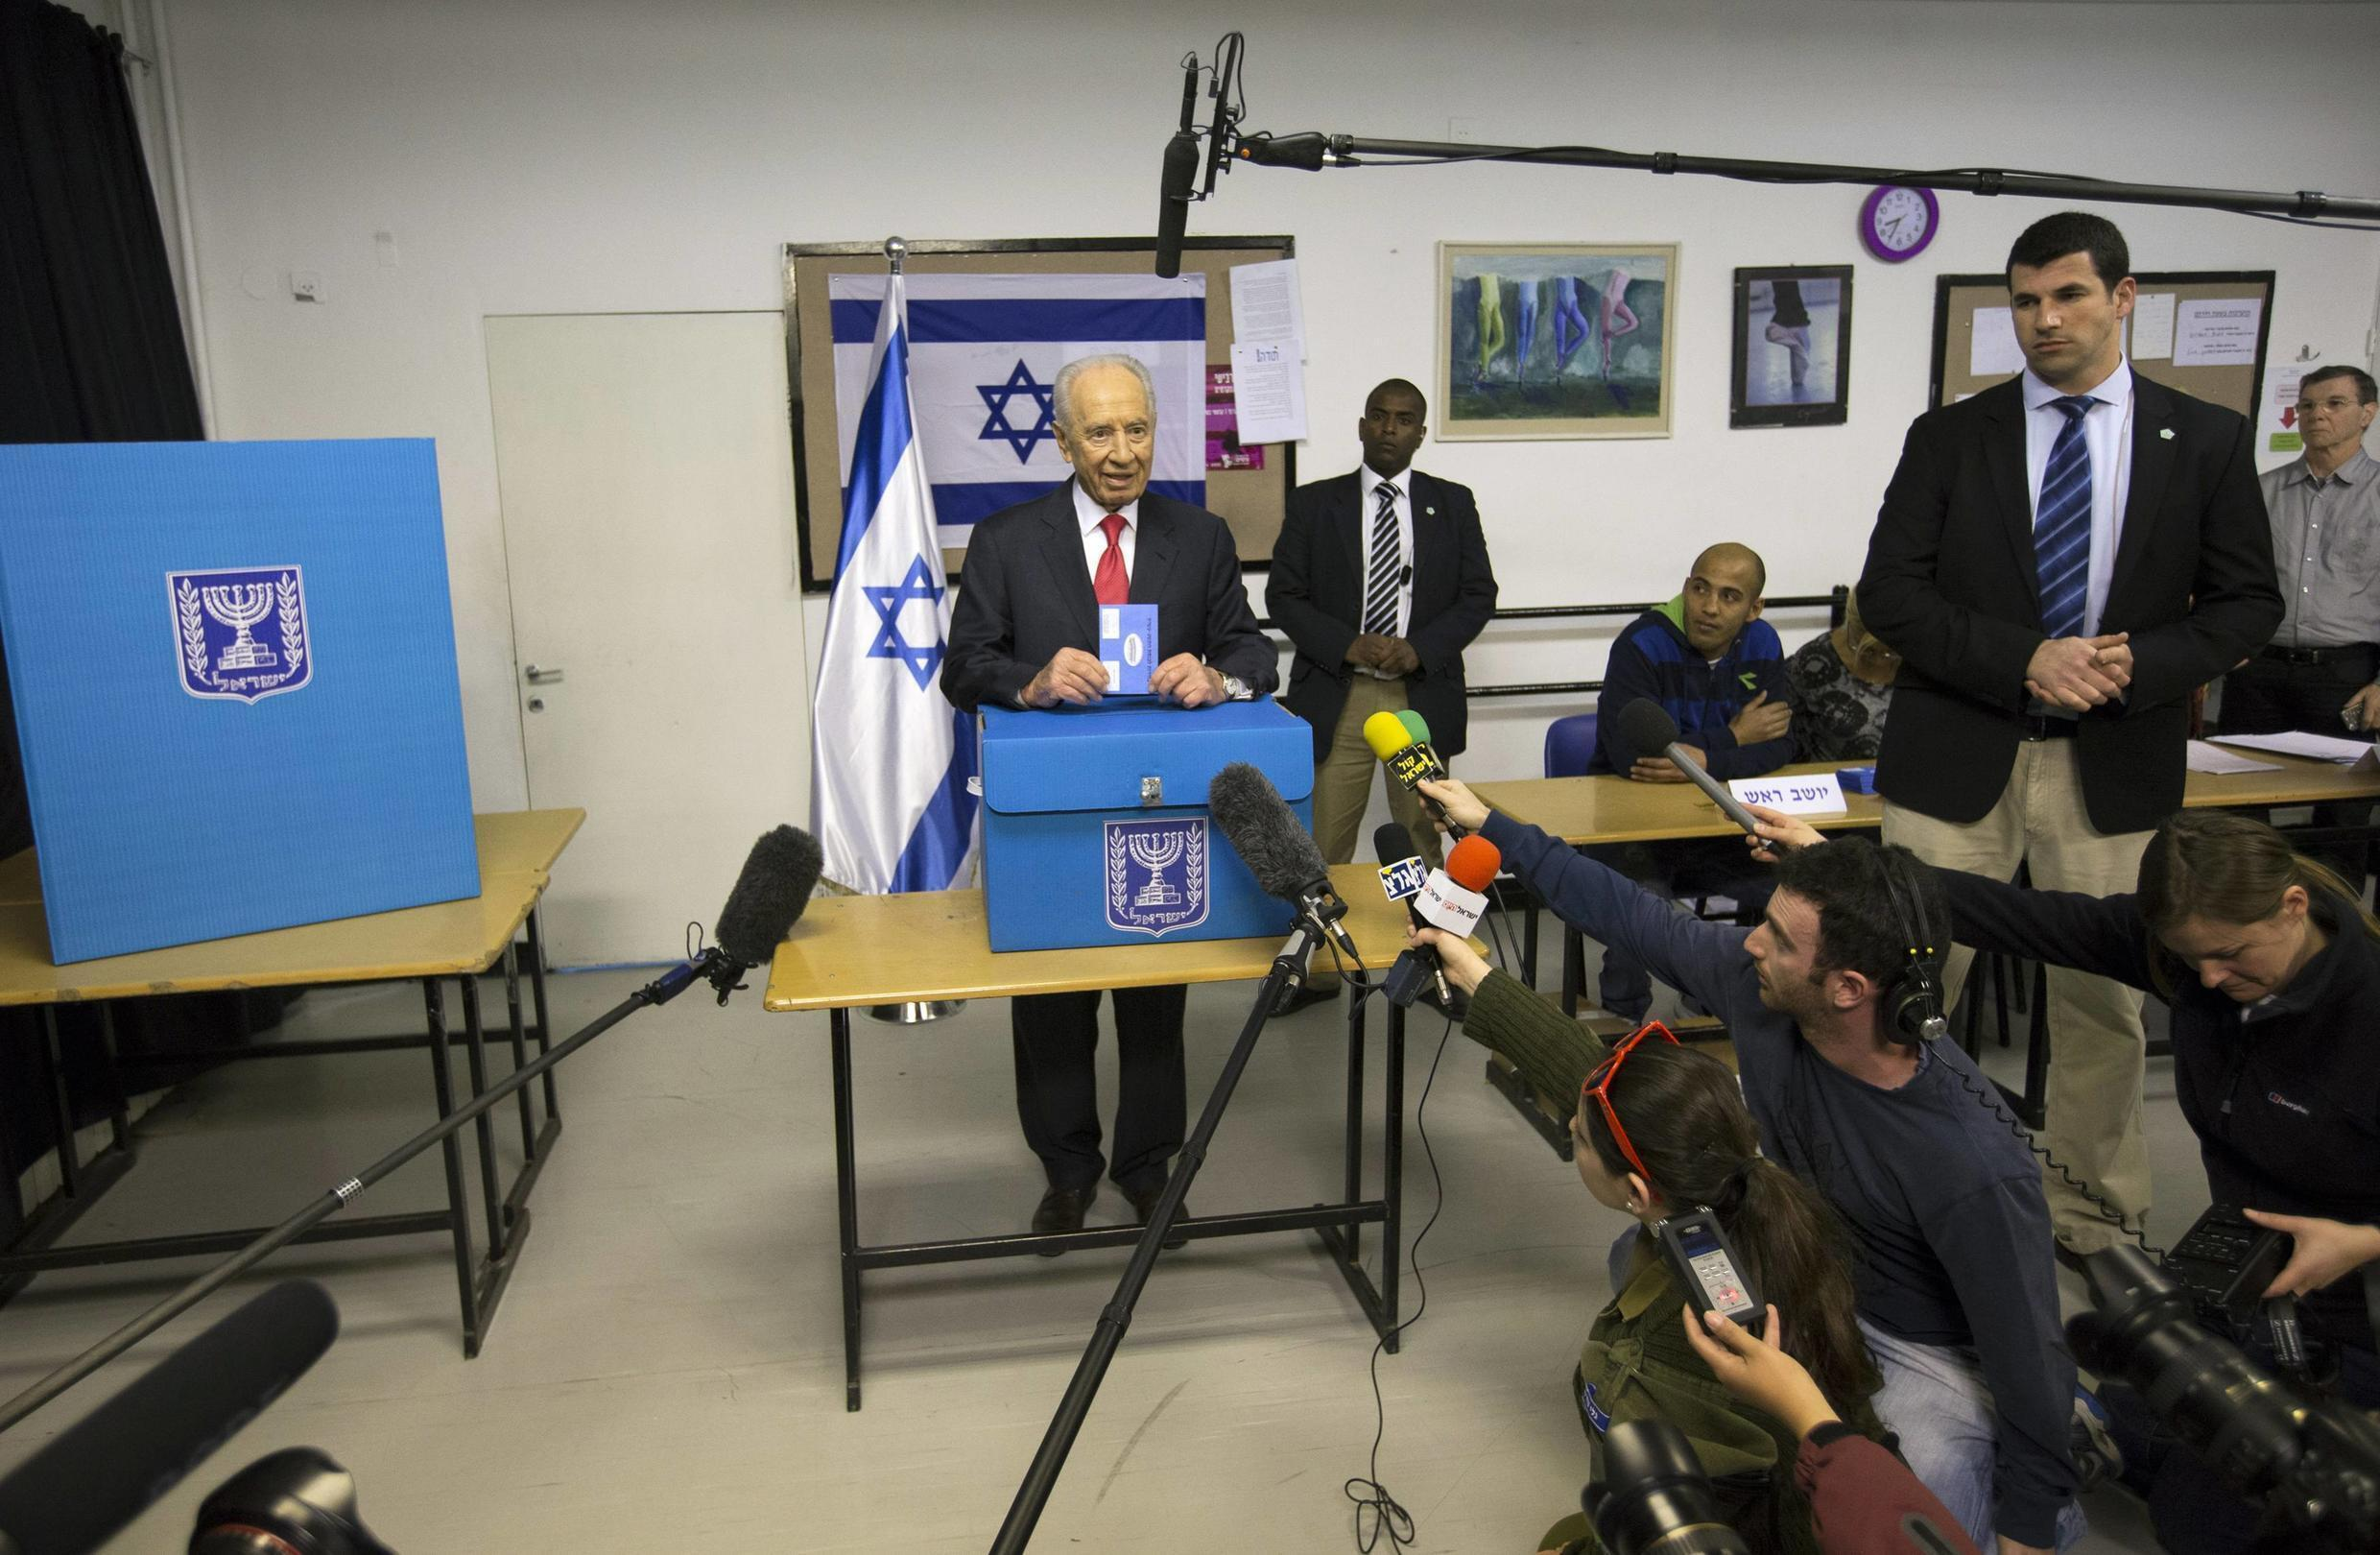 Israel's President Shimon Peres casts his ballot for the parliamentary election at a polling station in Jerusalem 22 January